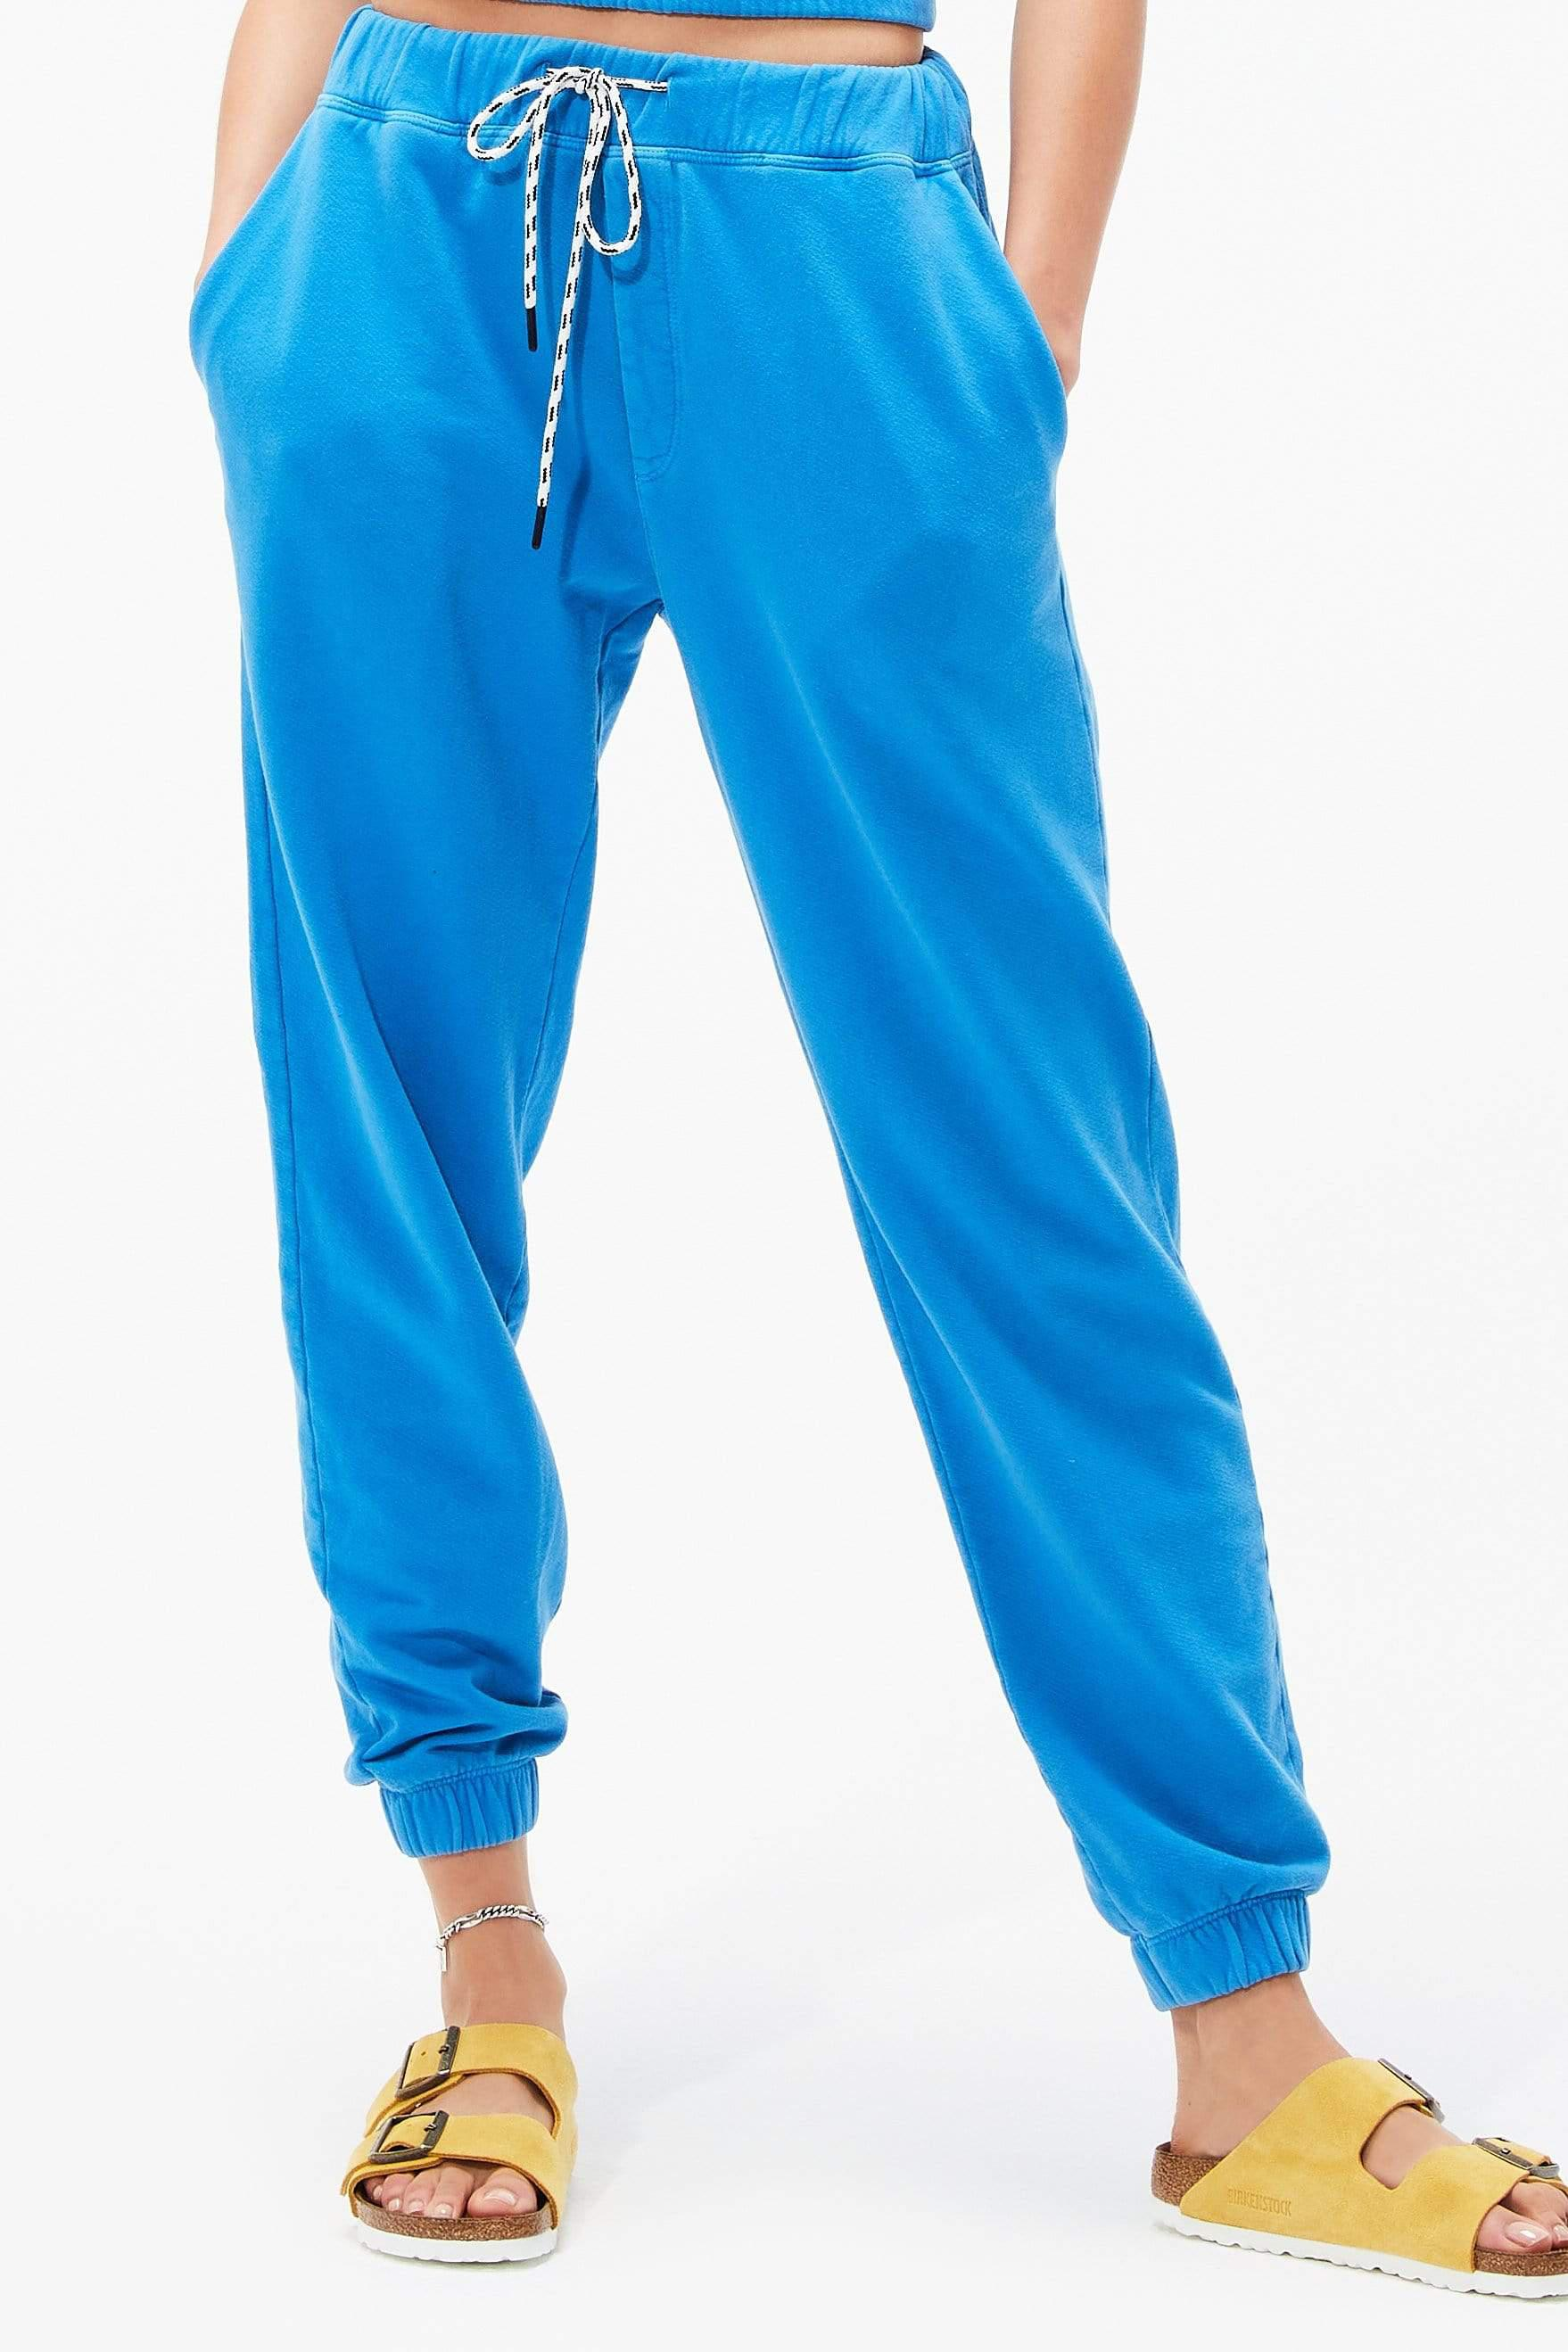 Franky French Terry 7/8 Sweatpant - Persian Blue